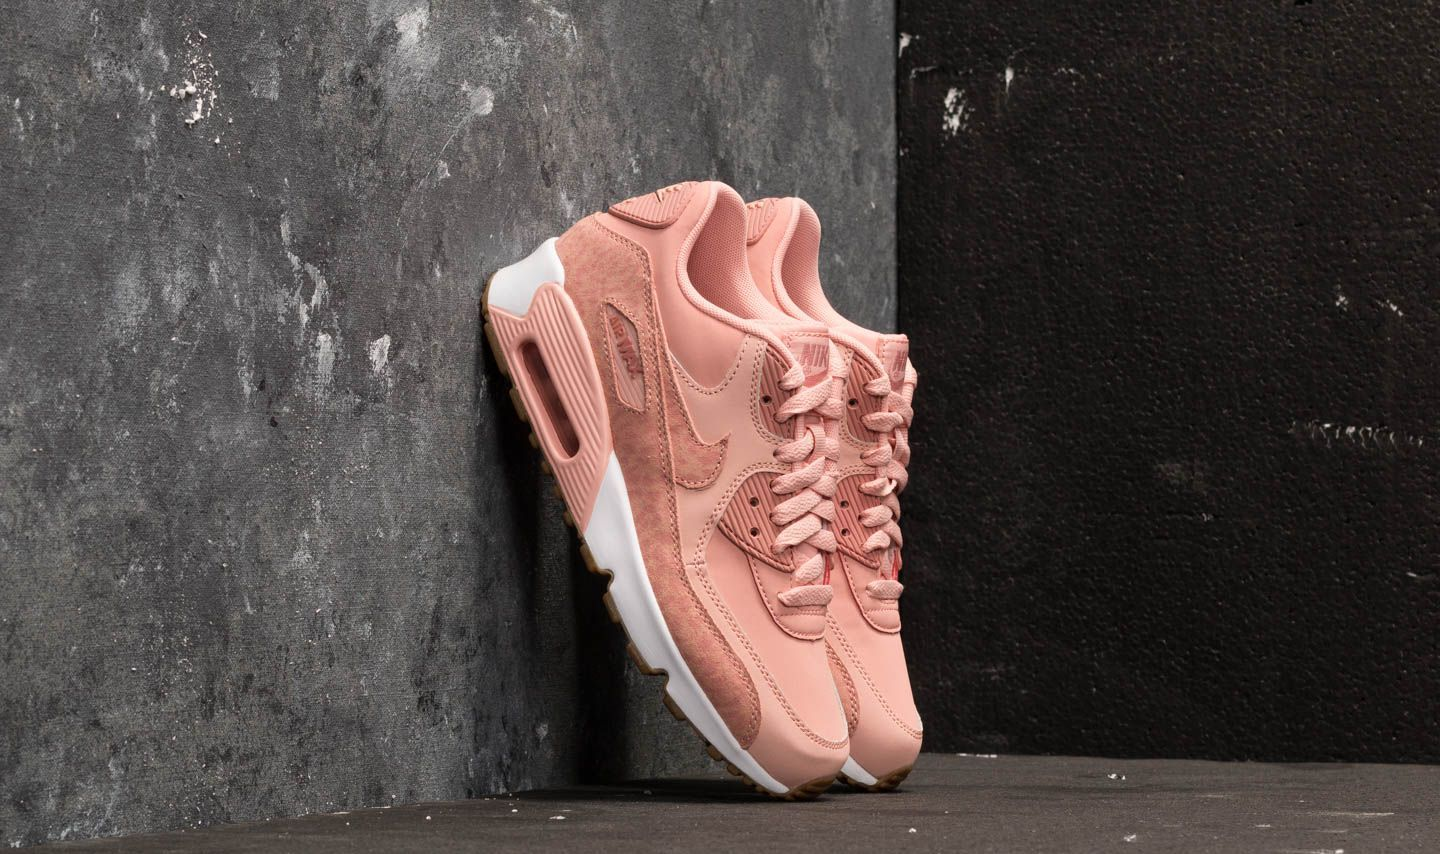 Nike Air Max 90 Leather SE GG Coral Stardust Rust Pink White | Footshop